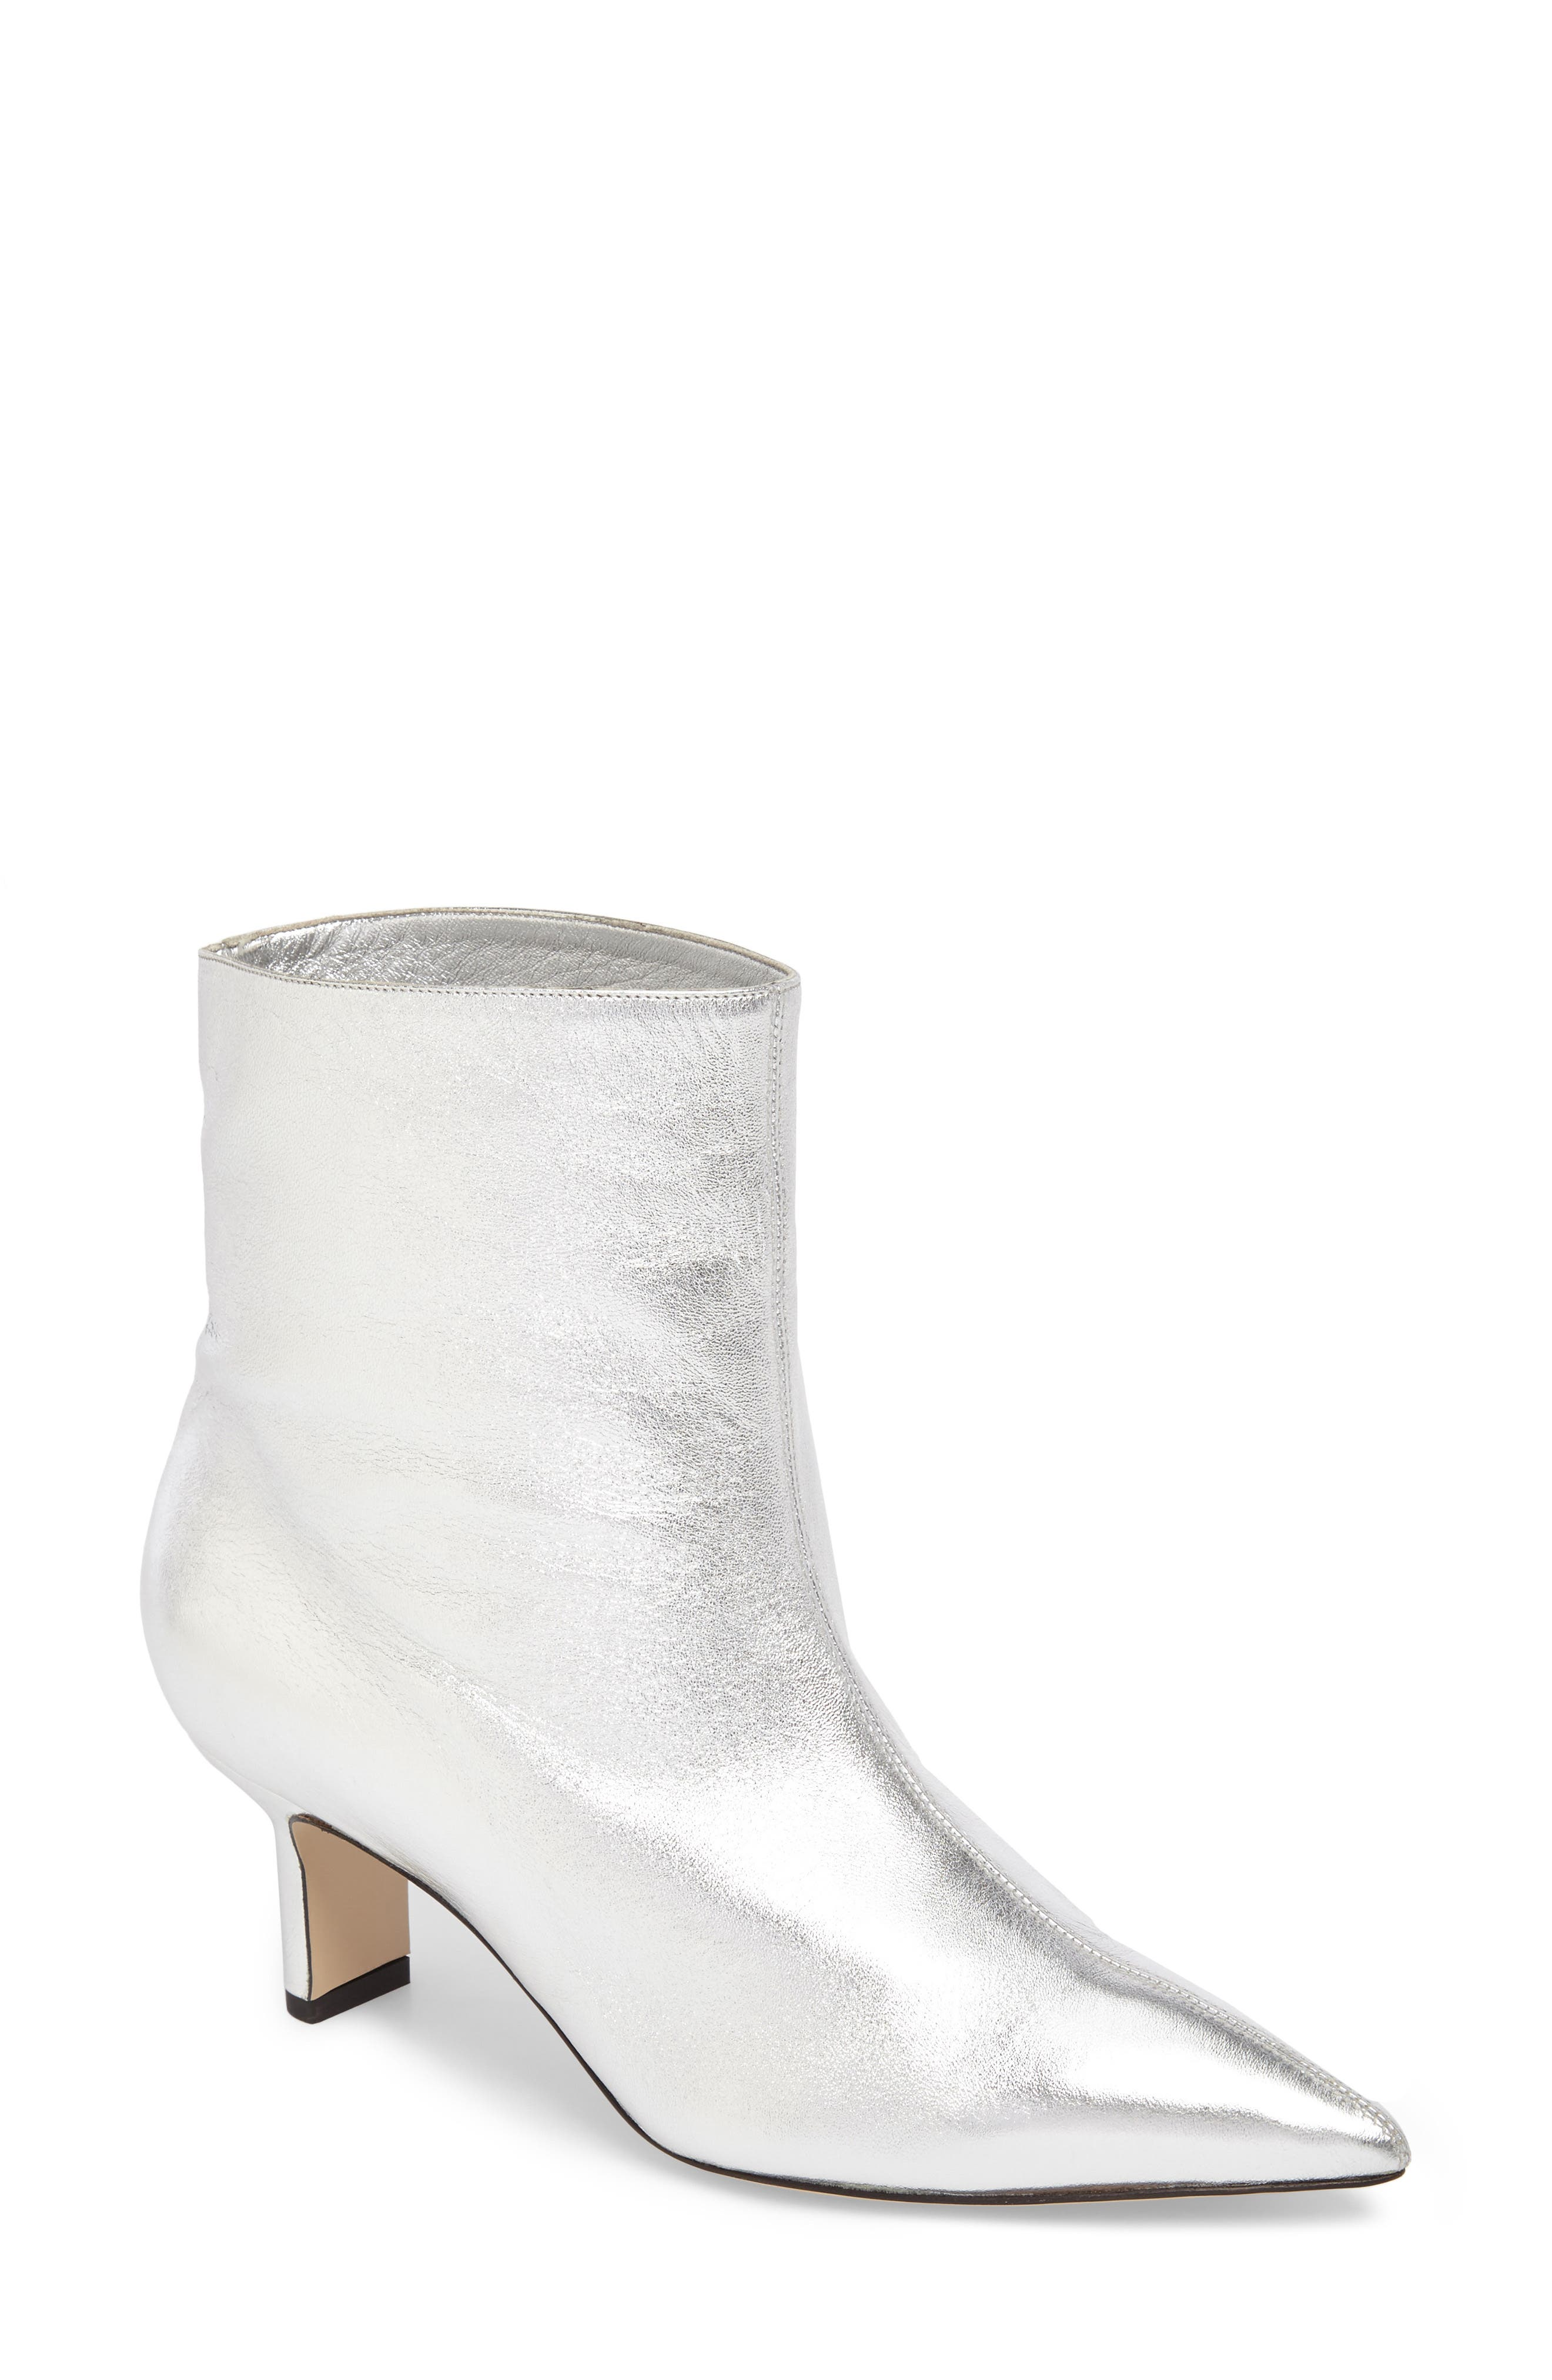 Mangold Pointy Toe Boot,                         Main,                         color, Silver